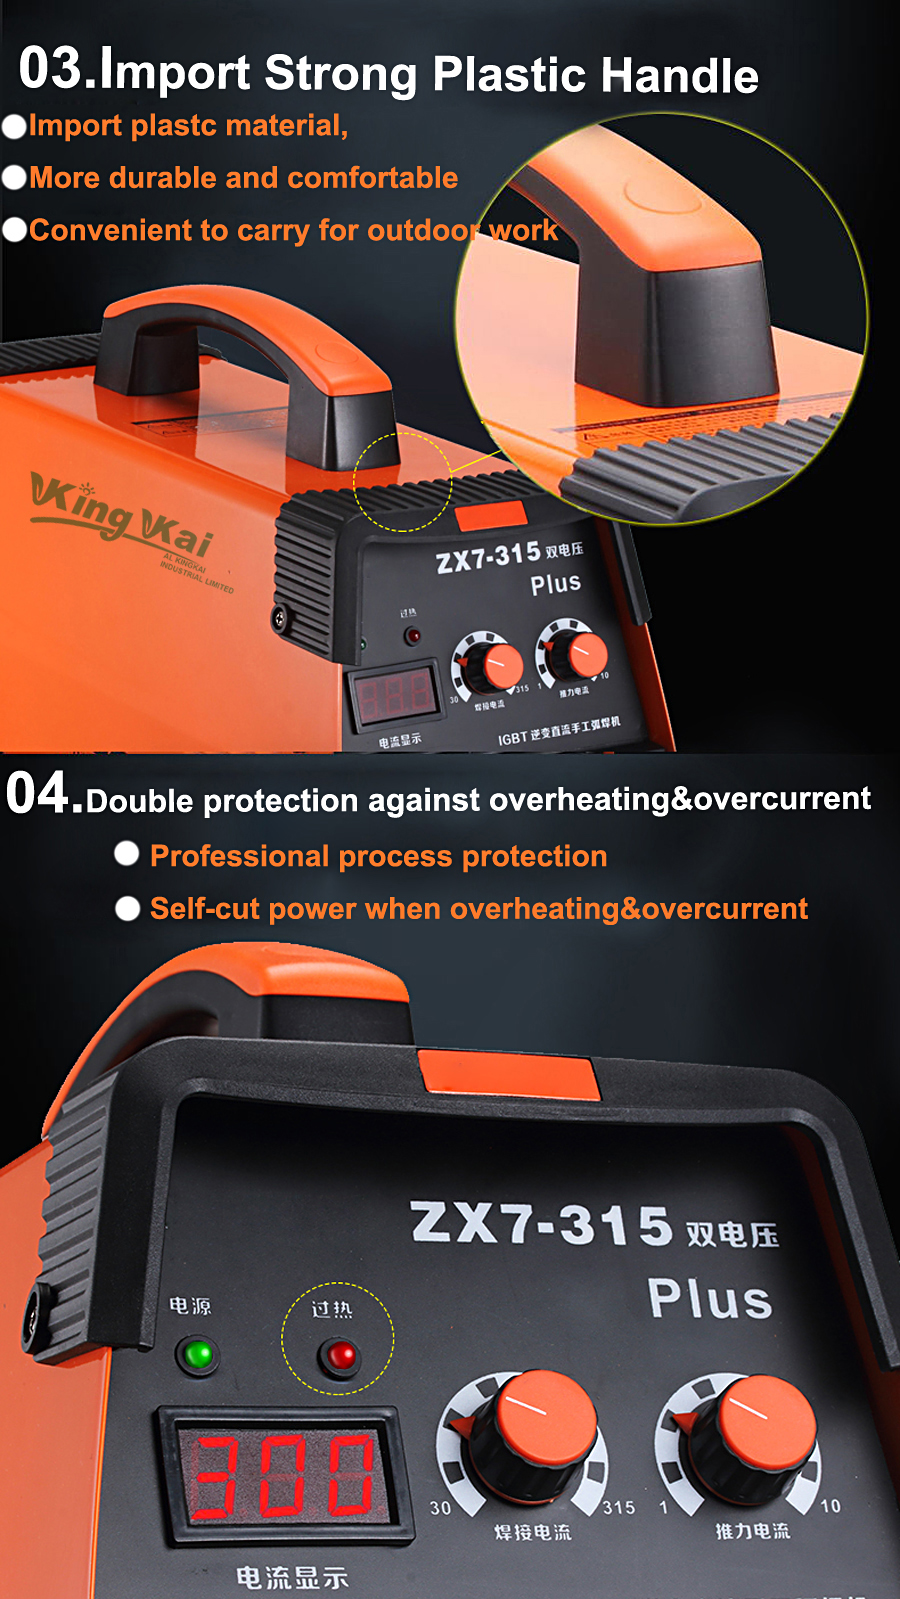 Portable Welder IGBT Inverter Arc Welding Machine-013